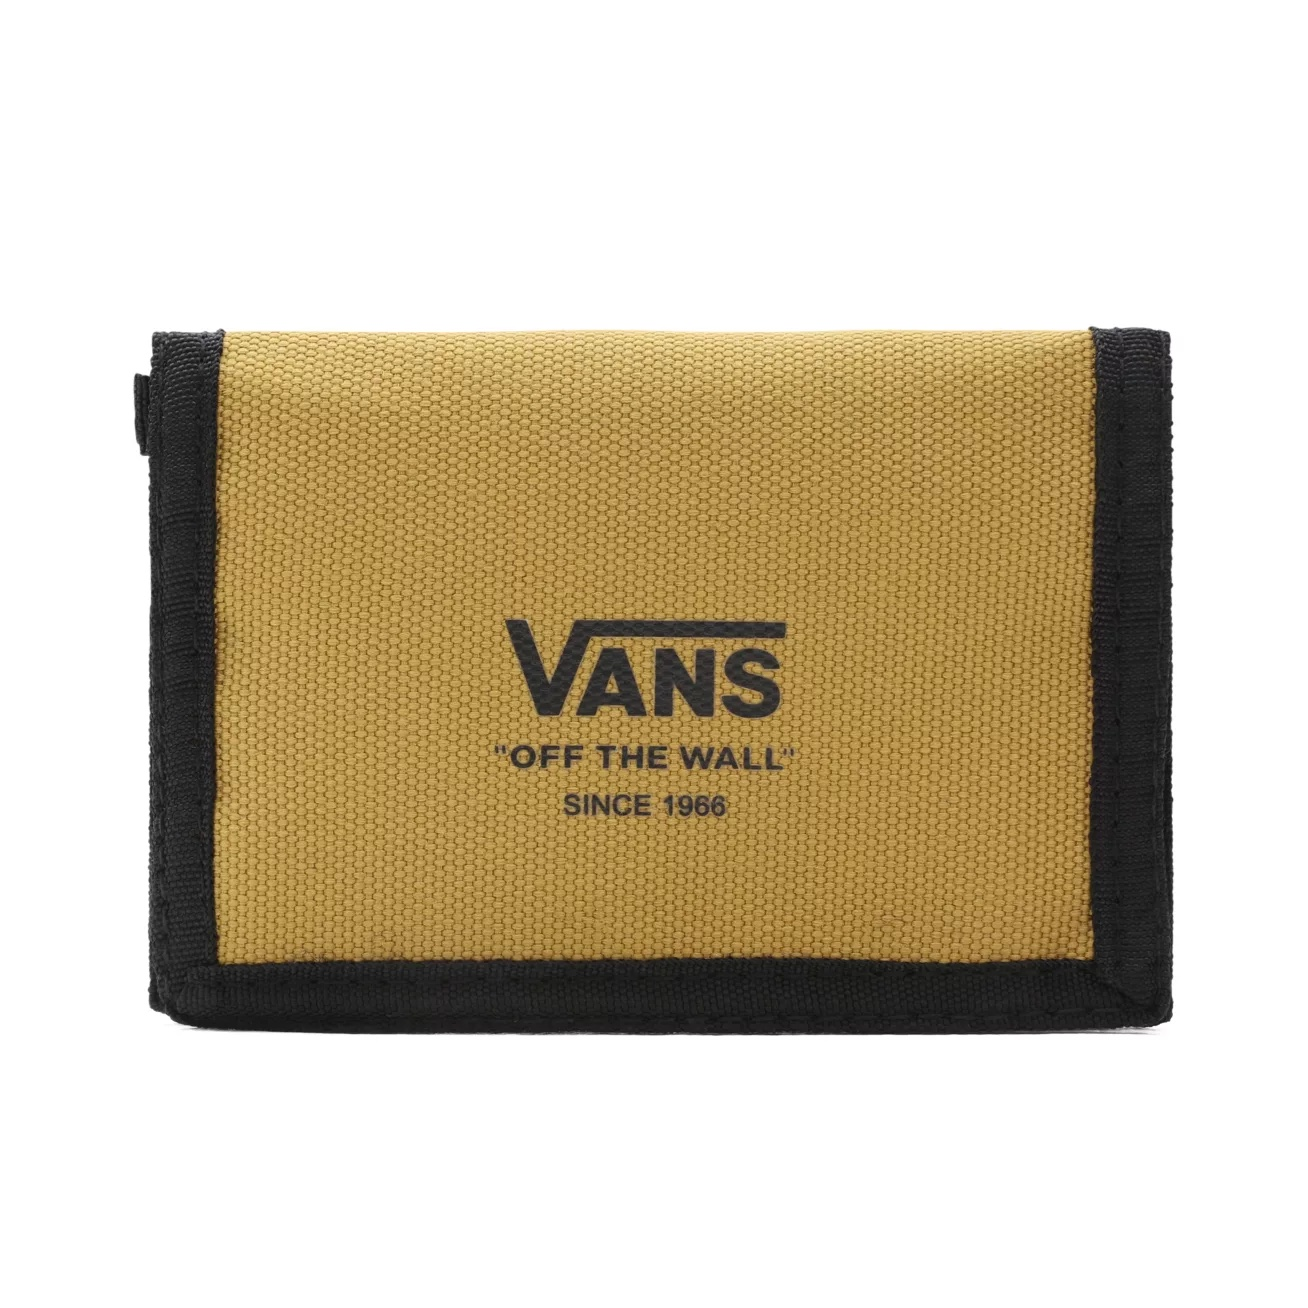 PORTEFEUILLE VANS GAINES DRIED TOBACCO